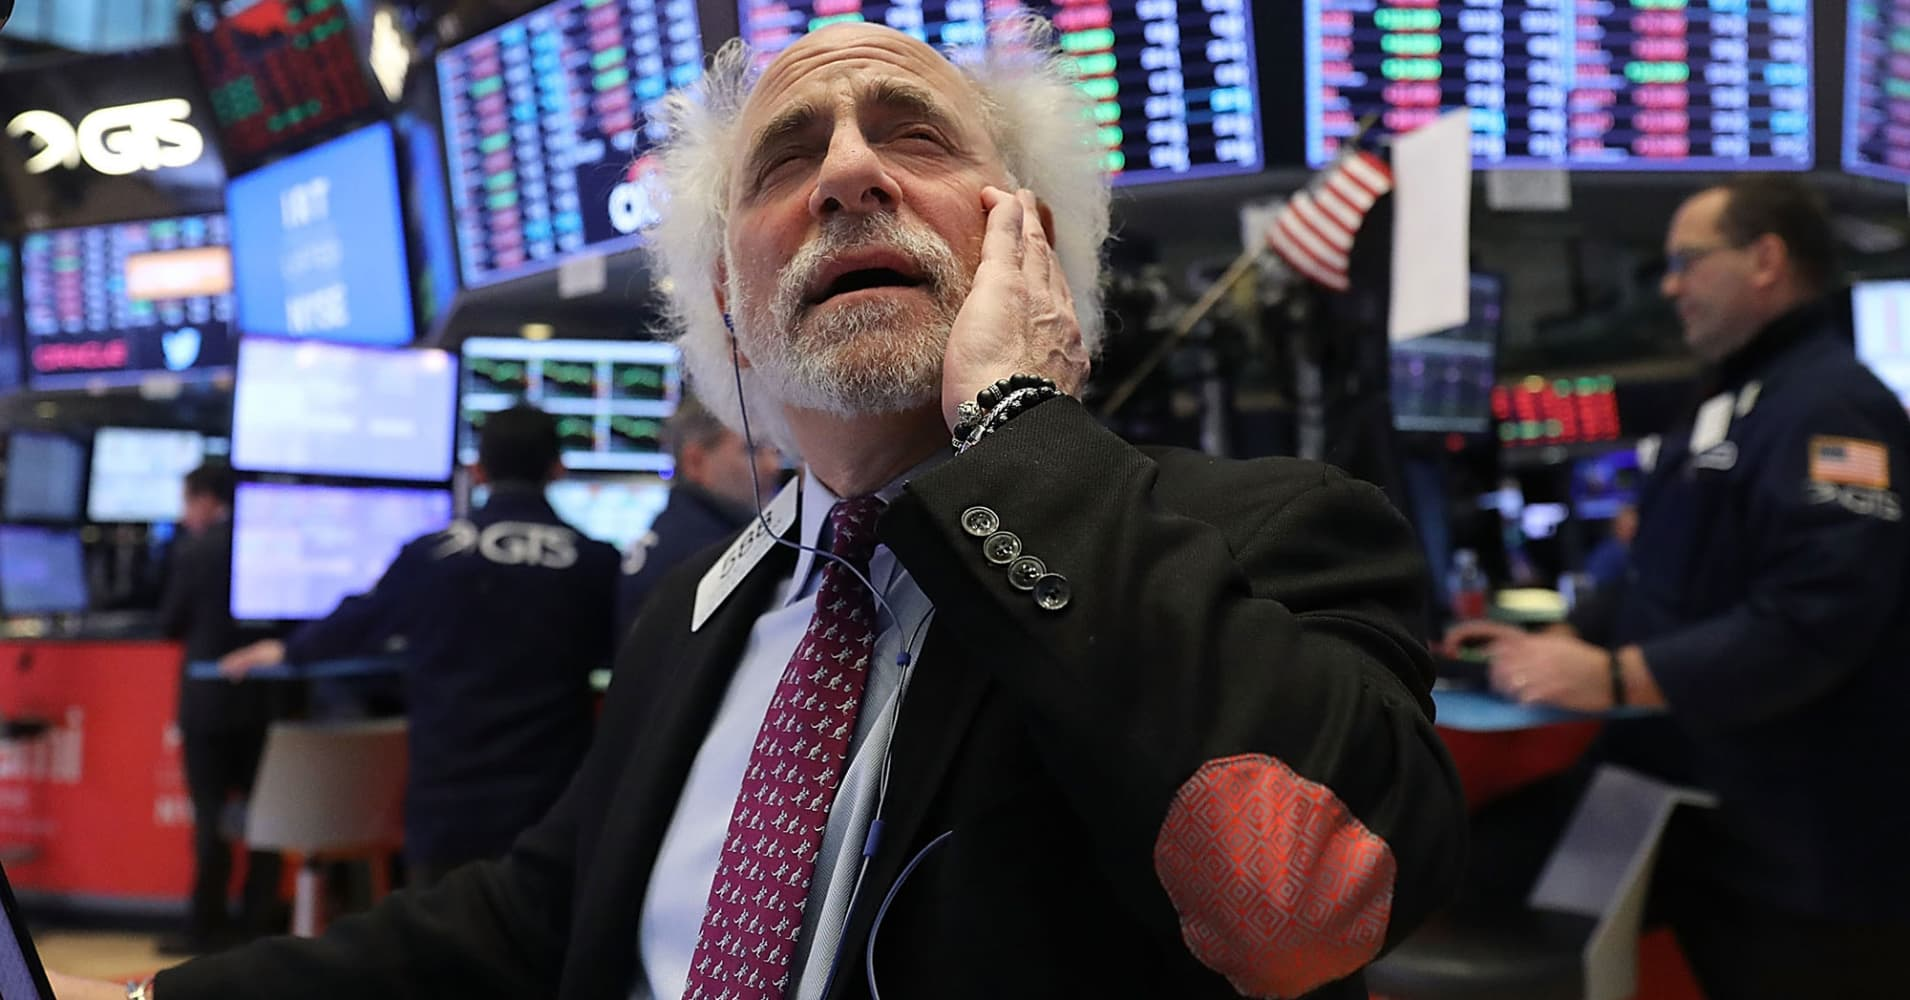 Stocks little changed as Trump legal issues, US-China trade dampen market sentiment